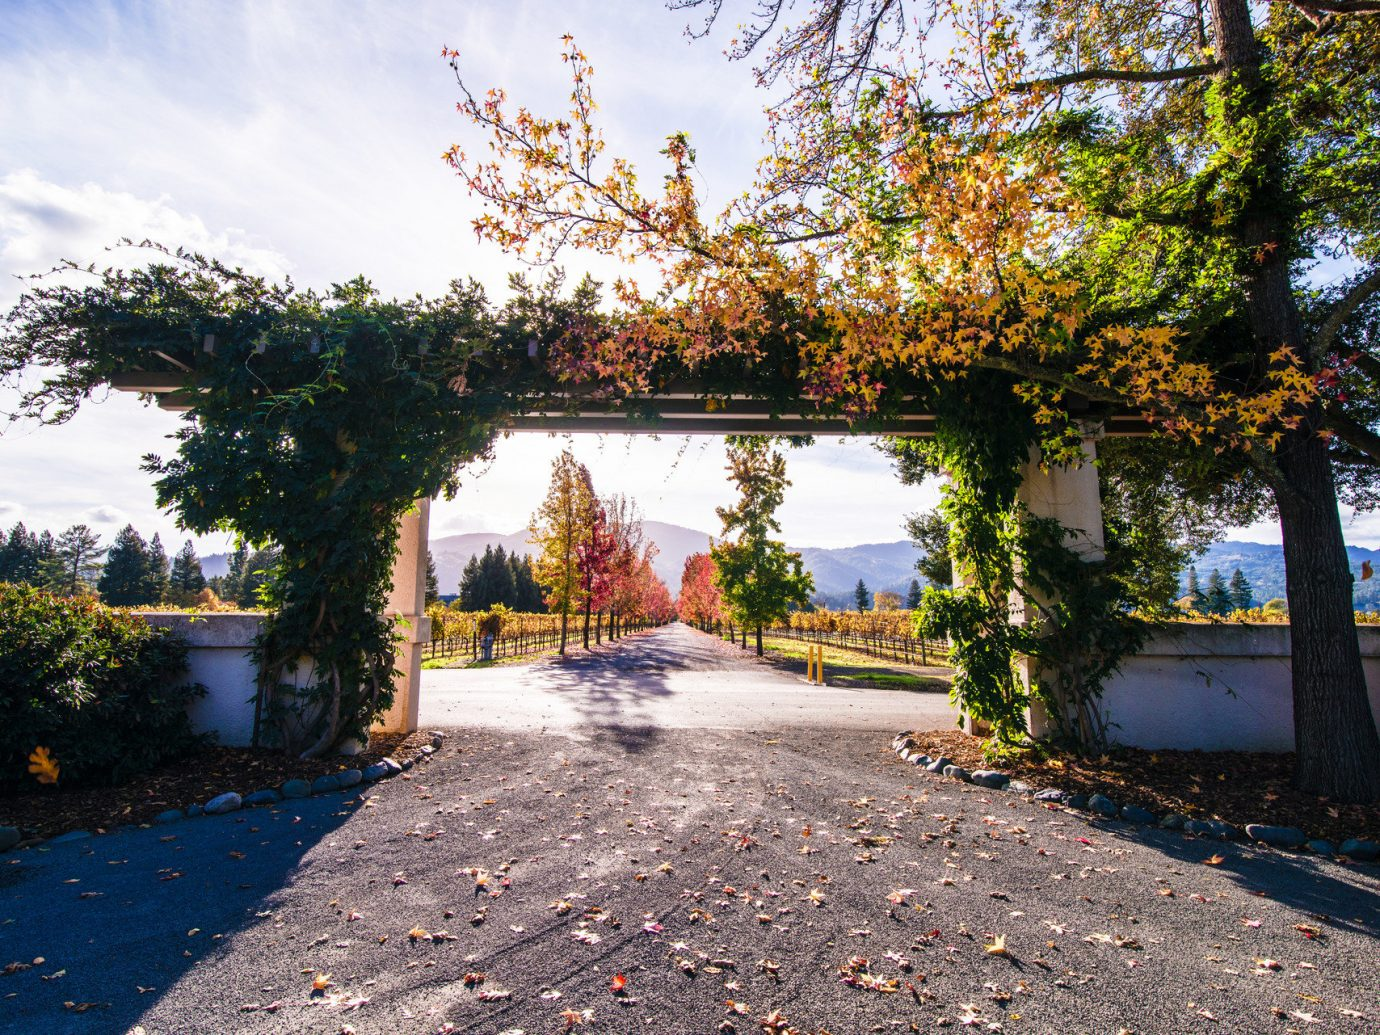 autumn calm entrance Fall Fall leaves festival foliage Greenery leaves Mountains Nature remote serene Travel Tips trees Trip Ideas tree outdoor sky ground neighbourhood house season leaf estate woody plant home flower Garden way plant